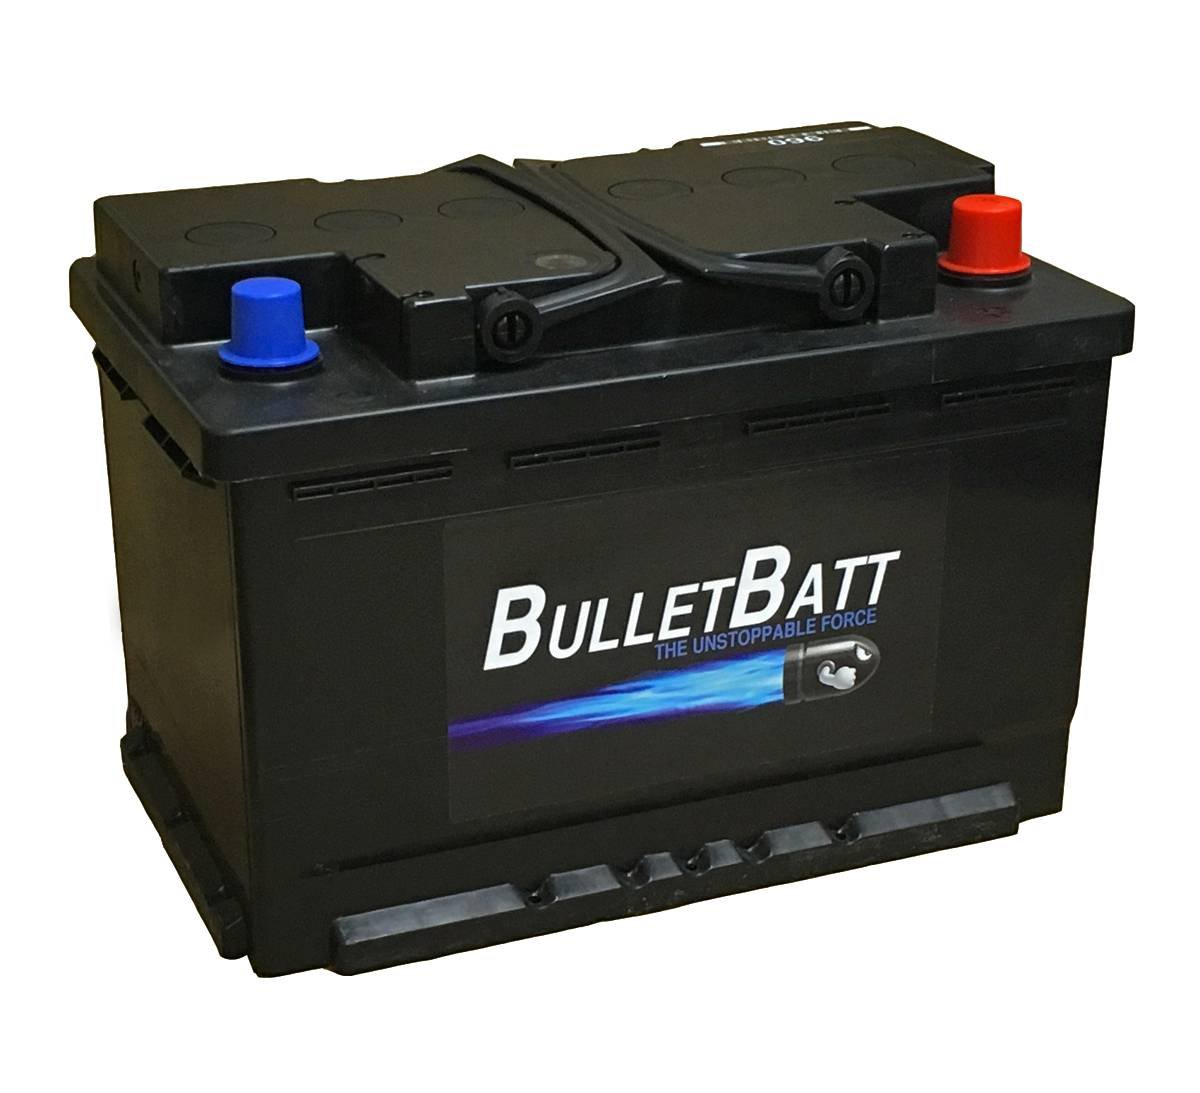 096 BulletBatt Batterie de Voiture 12V